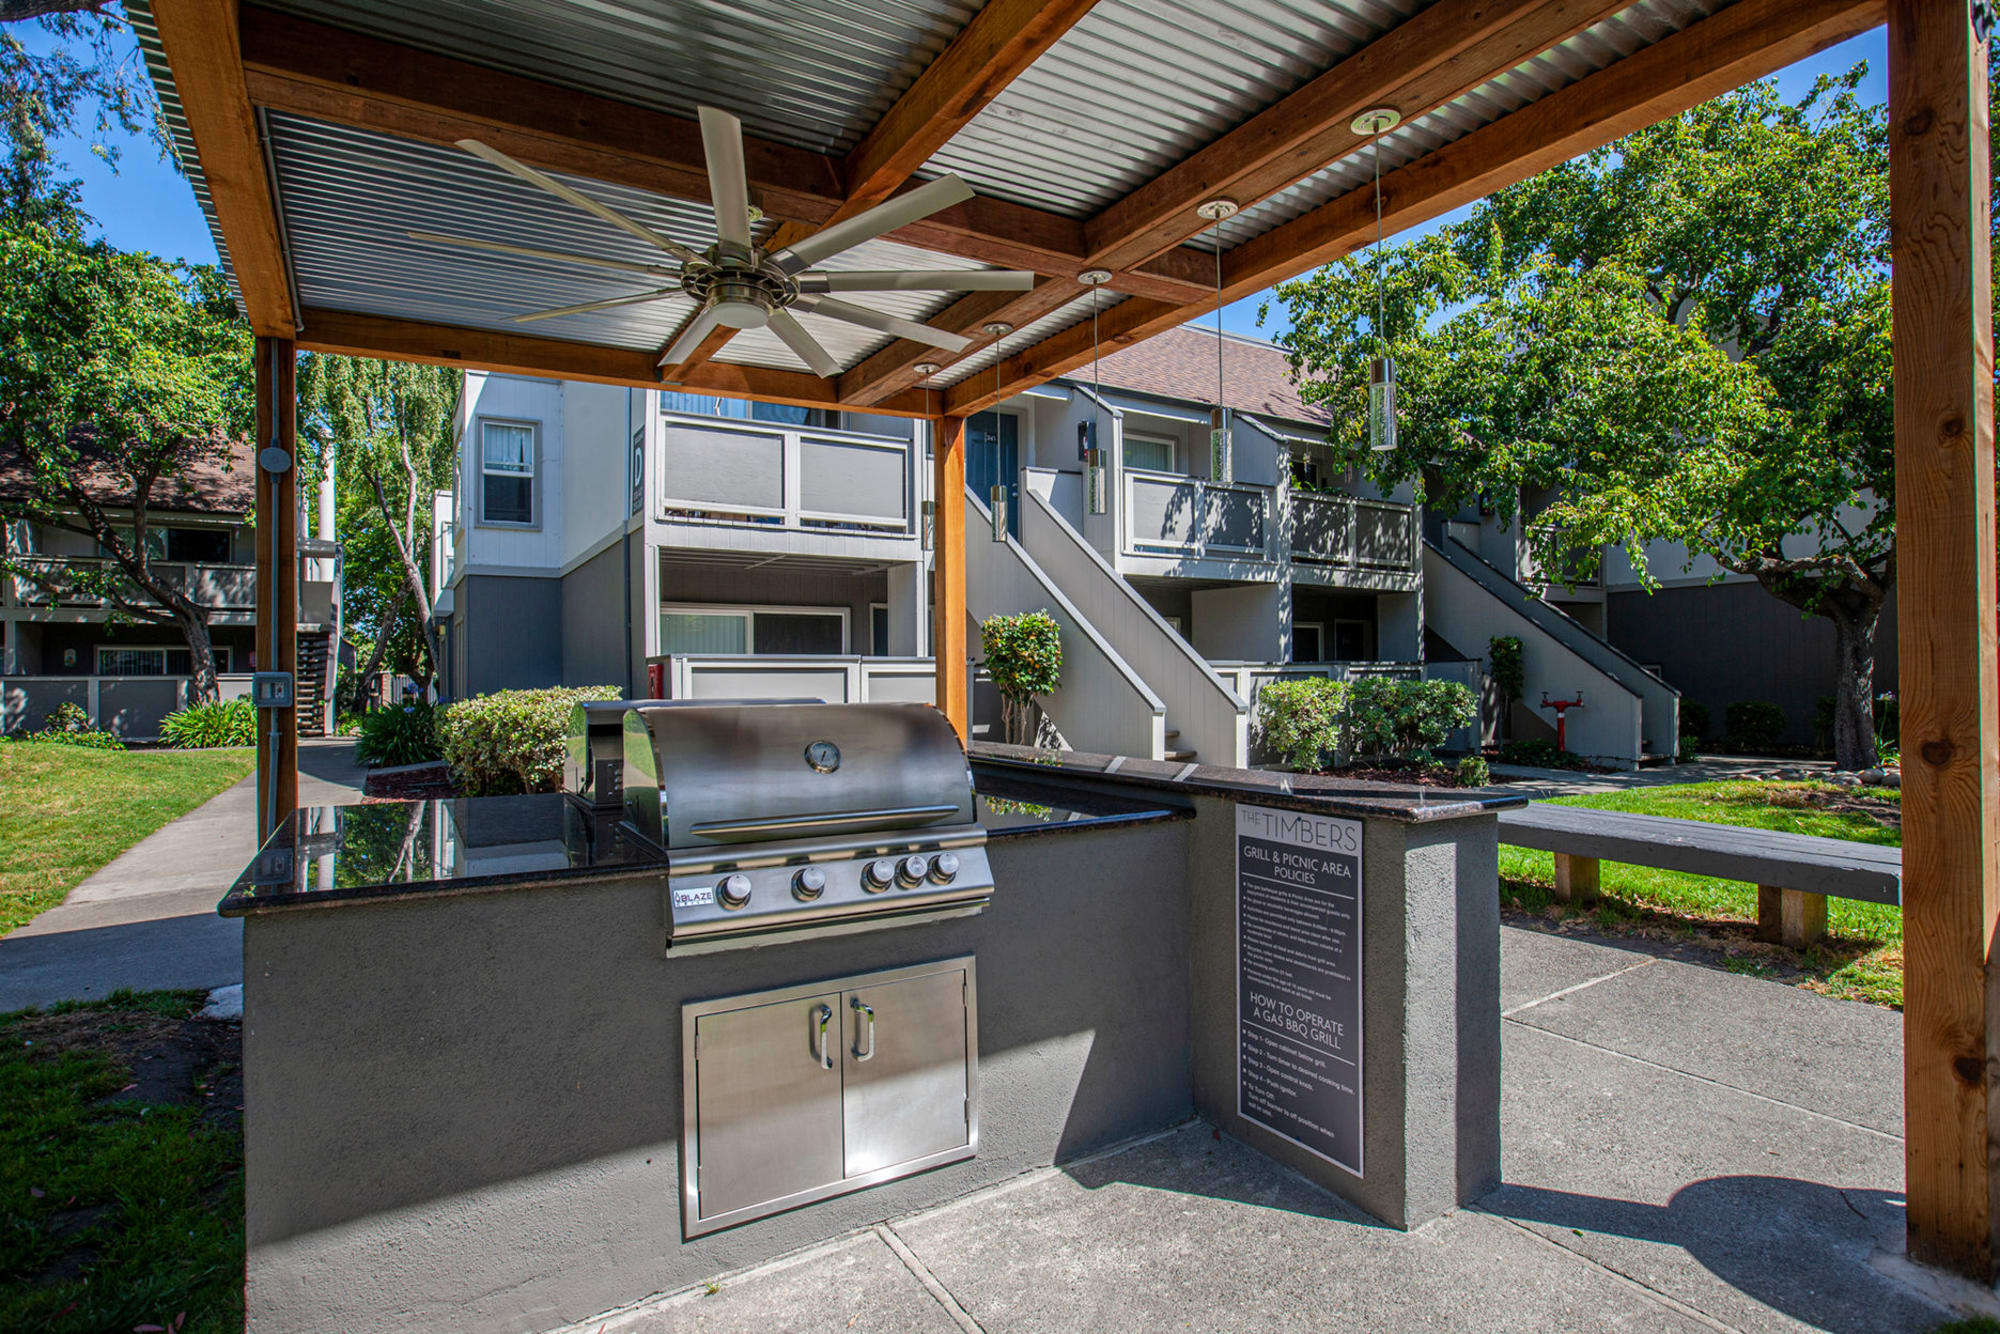 Outdoor covered BBQ area at The Timbers Apartments in Hayward, California